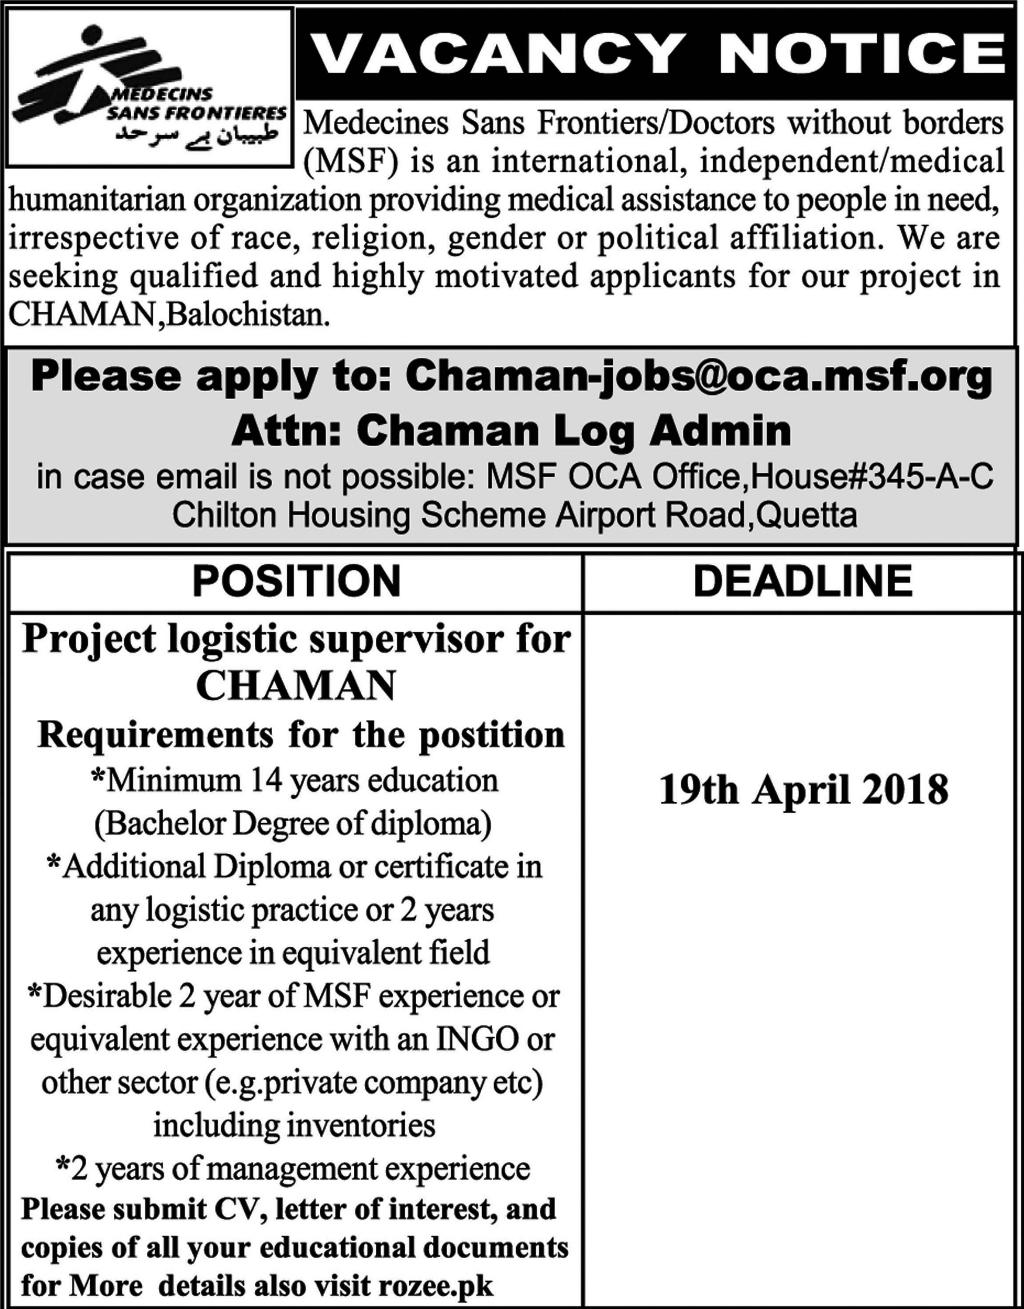 Medecins Sans Frontiers MSF Project Logistics Supervisor Job